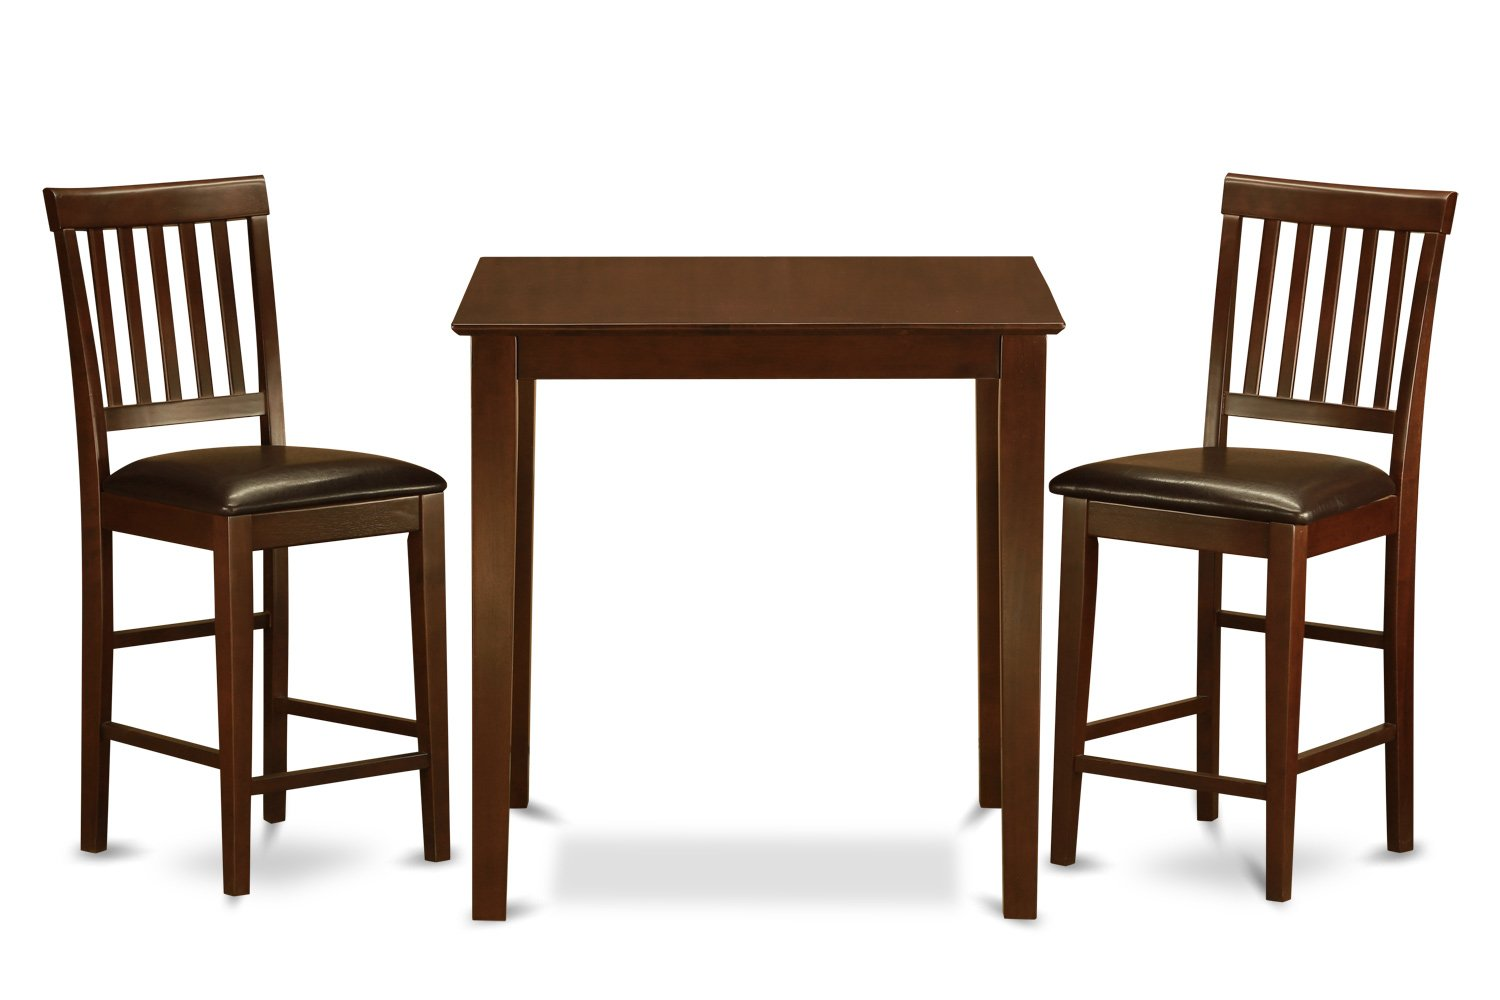 VERN3-MAH-LC 3 PC counter height Dining set-Square pub Table and 2 Stools